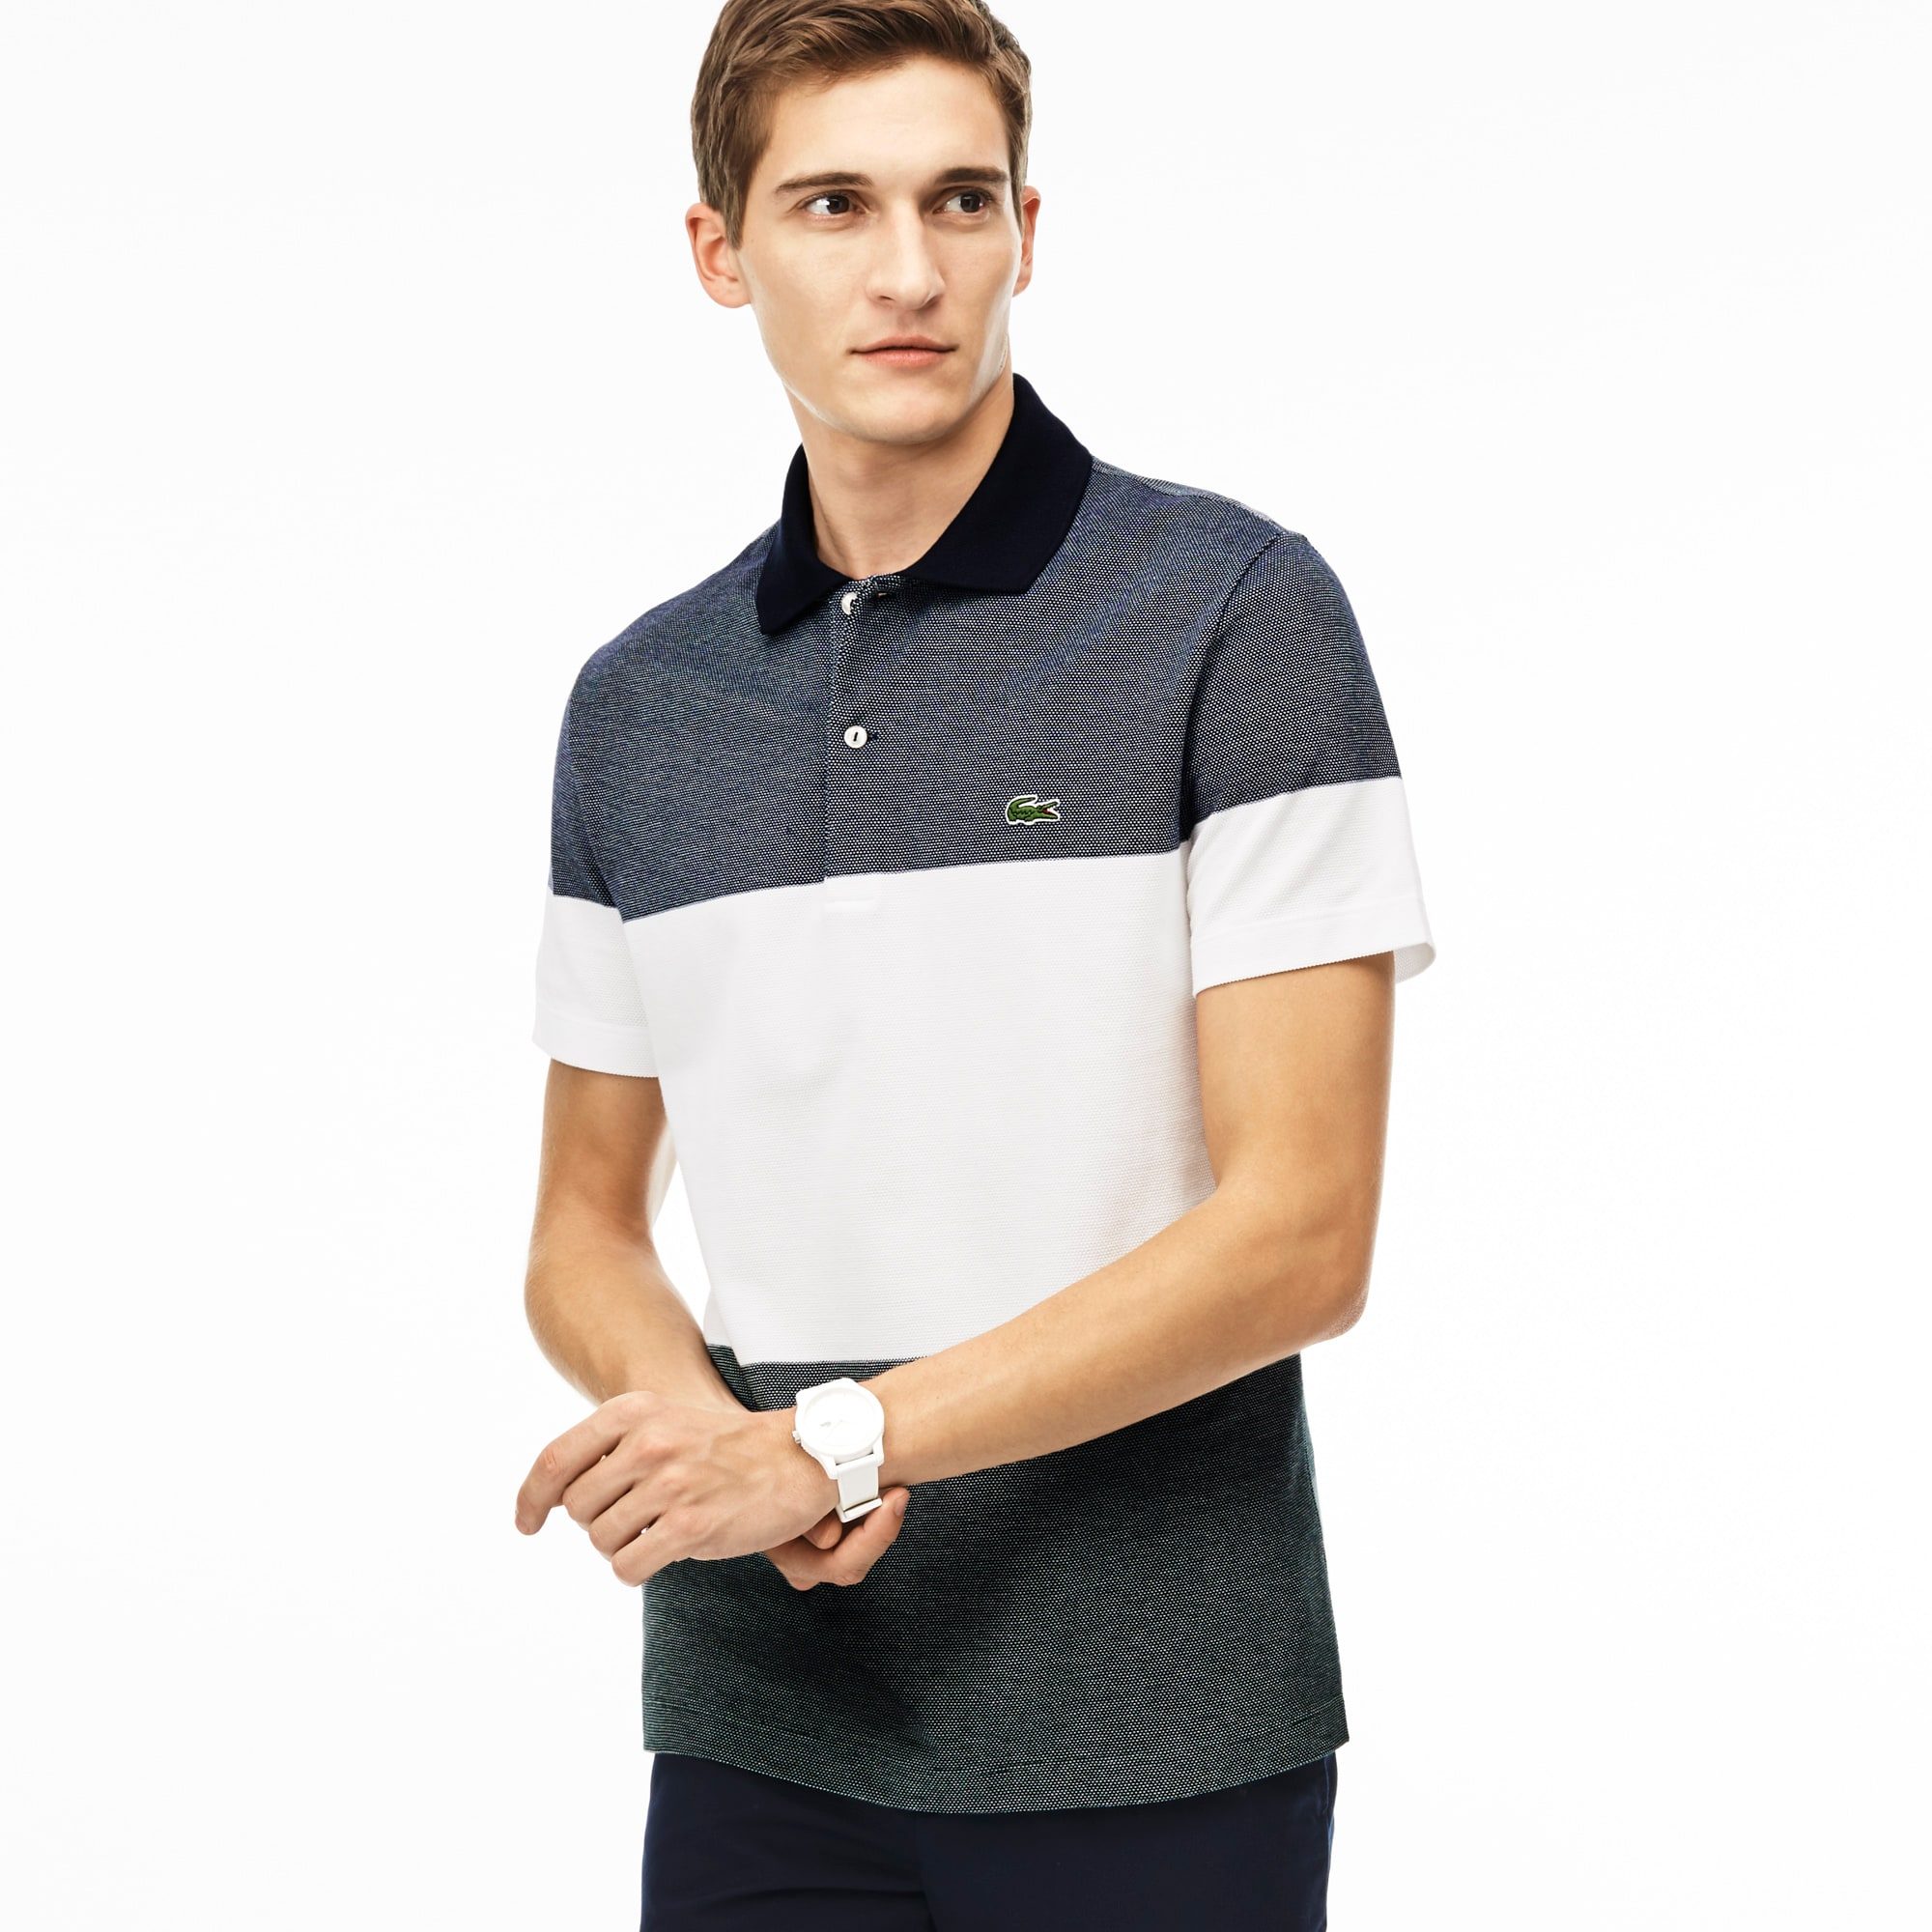 Men's Regular Fit Piqué Texturized Colorblock Polo Shirt